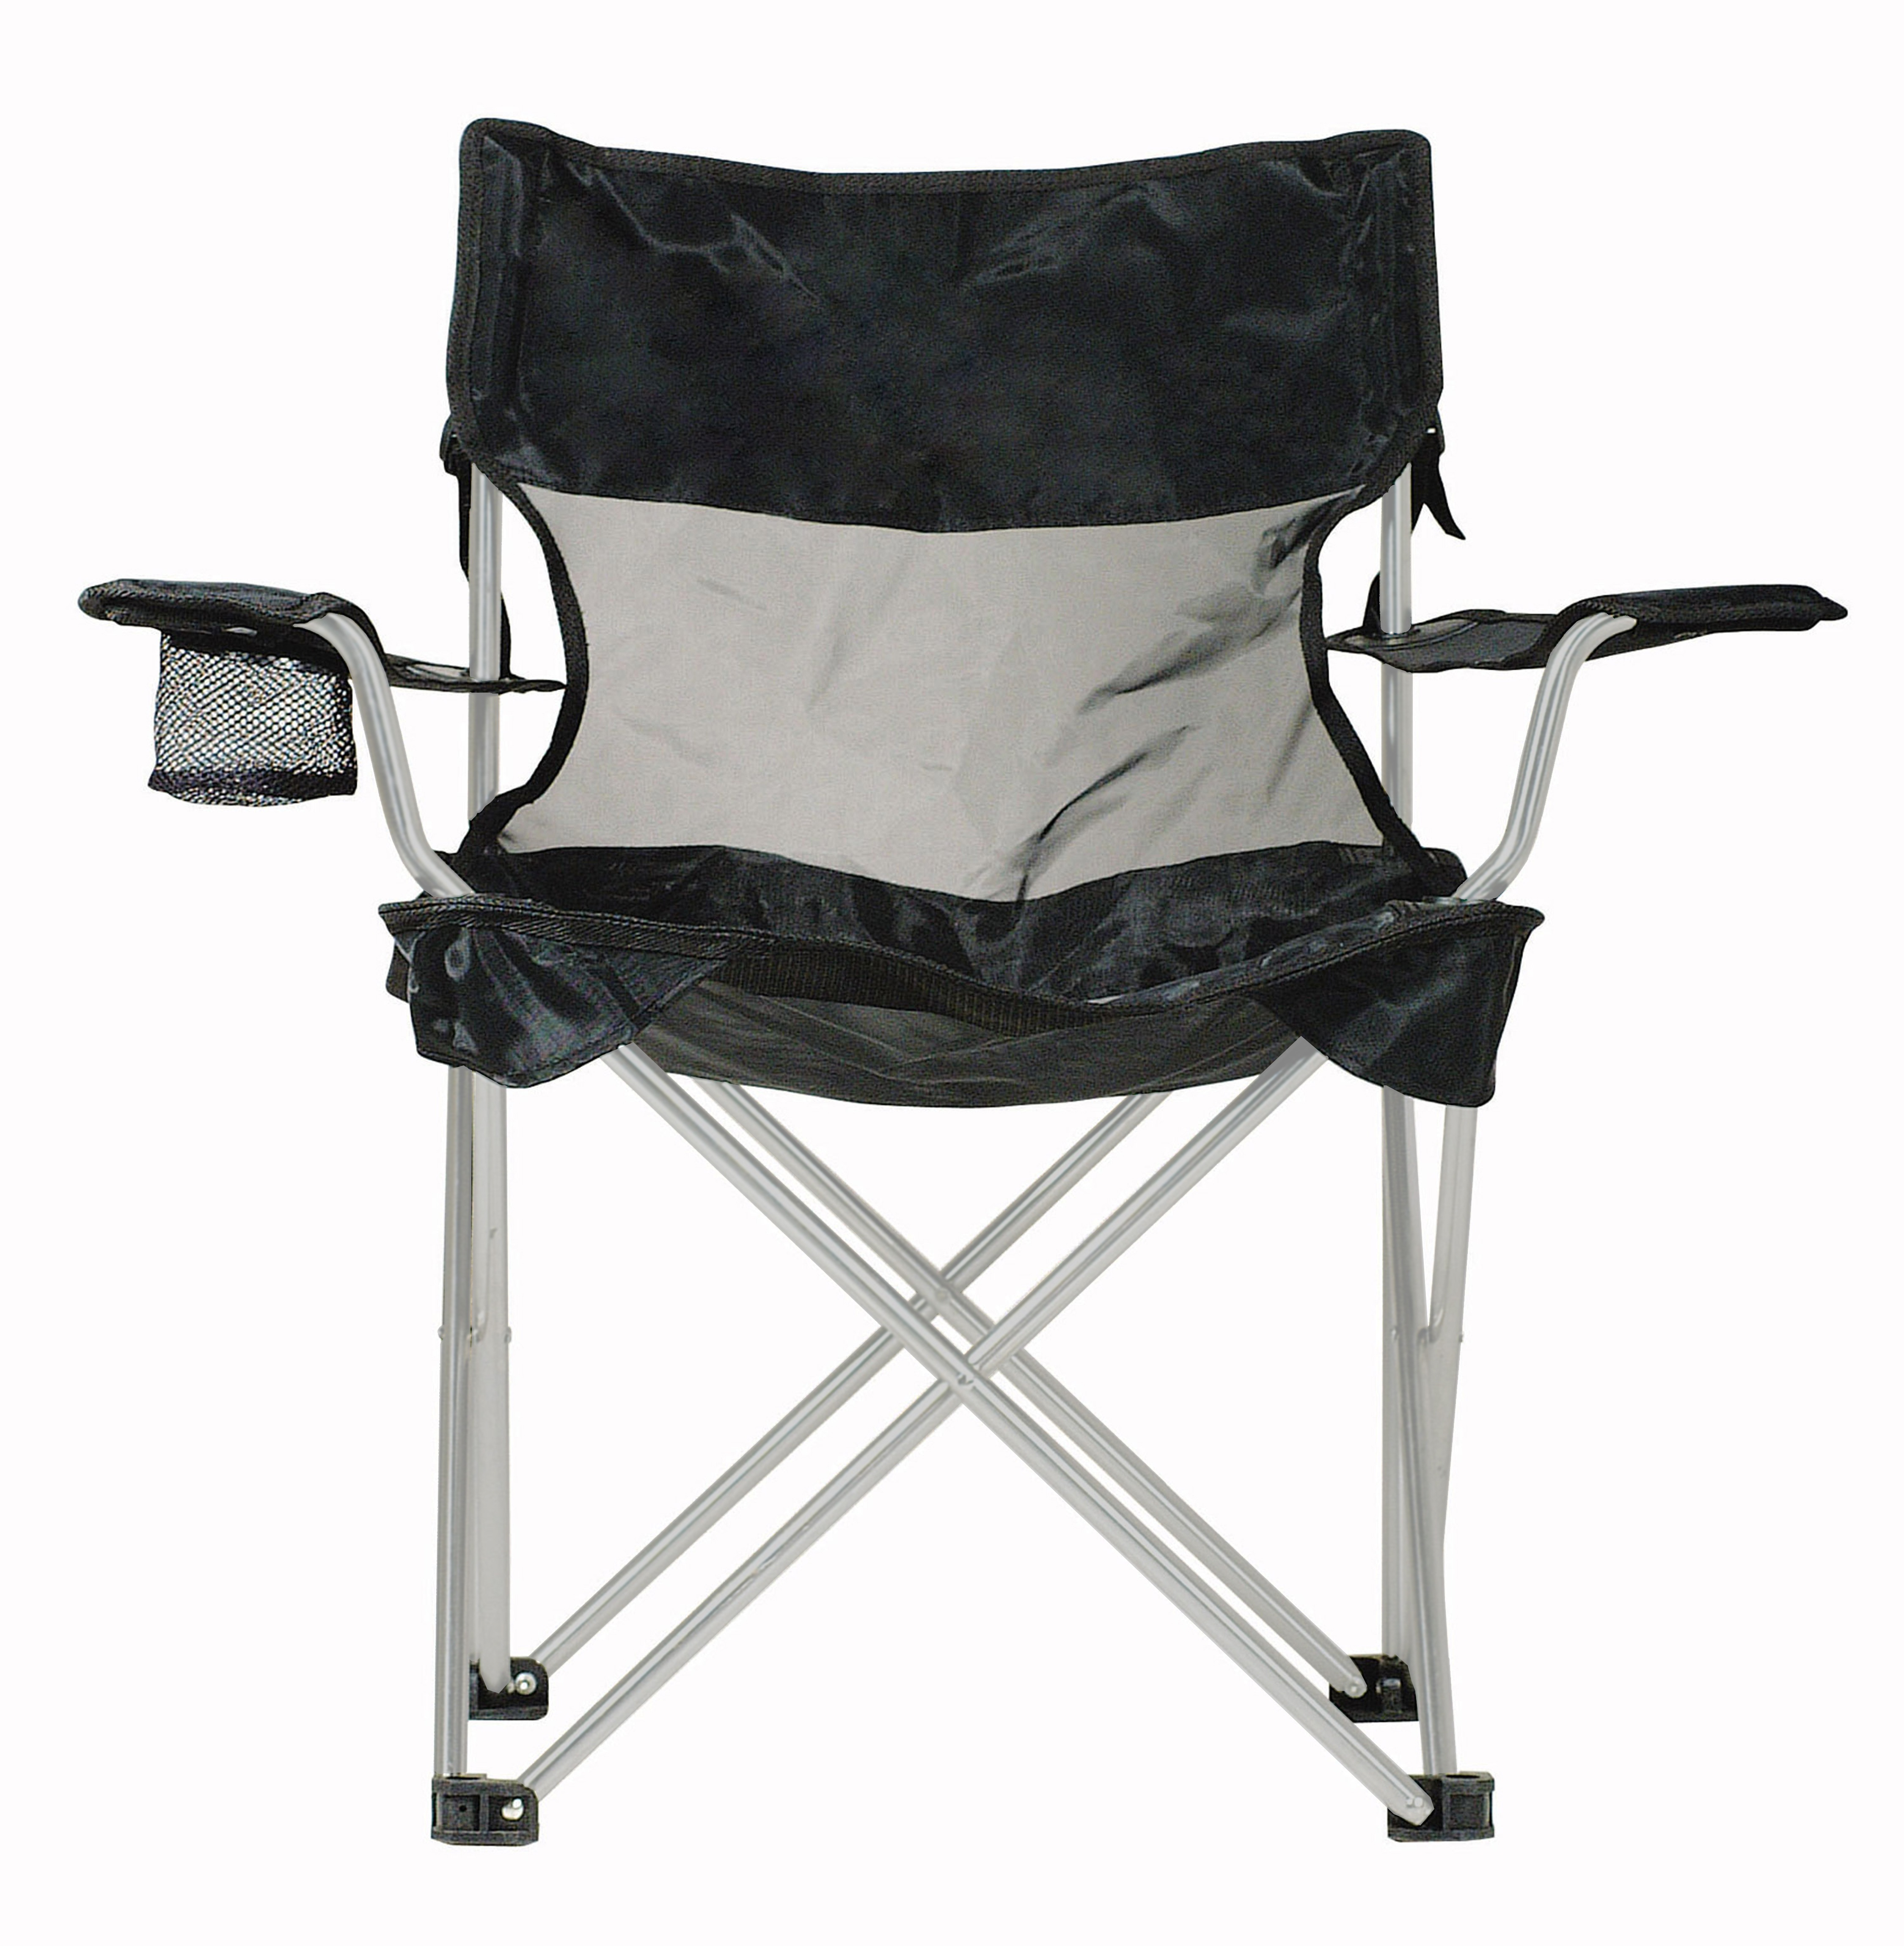 Big W Outdoor Table And Chairs Travel Chair Insect Shield Bug Repellent Mesh Camping Chair